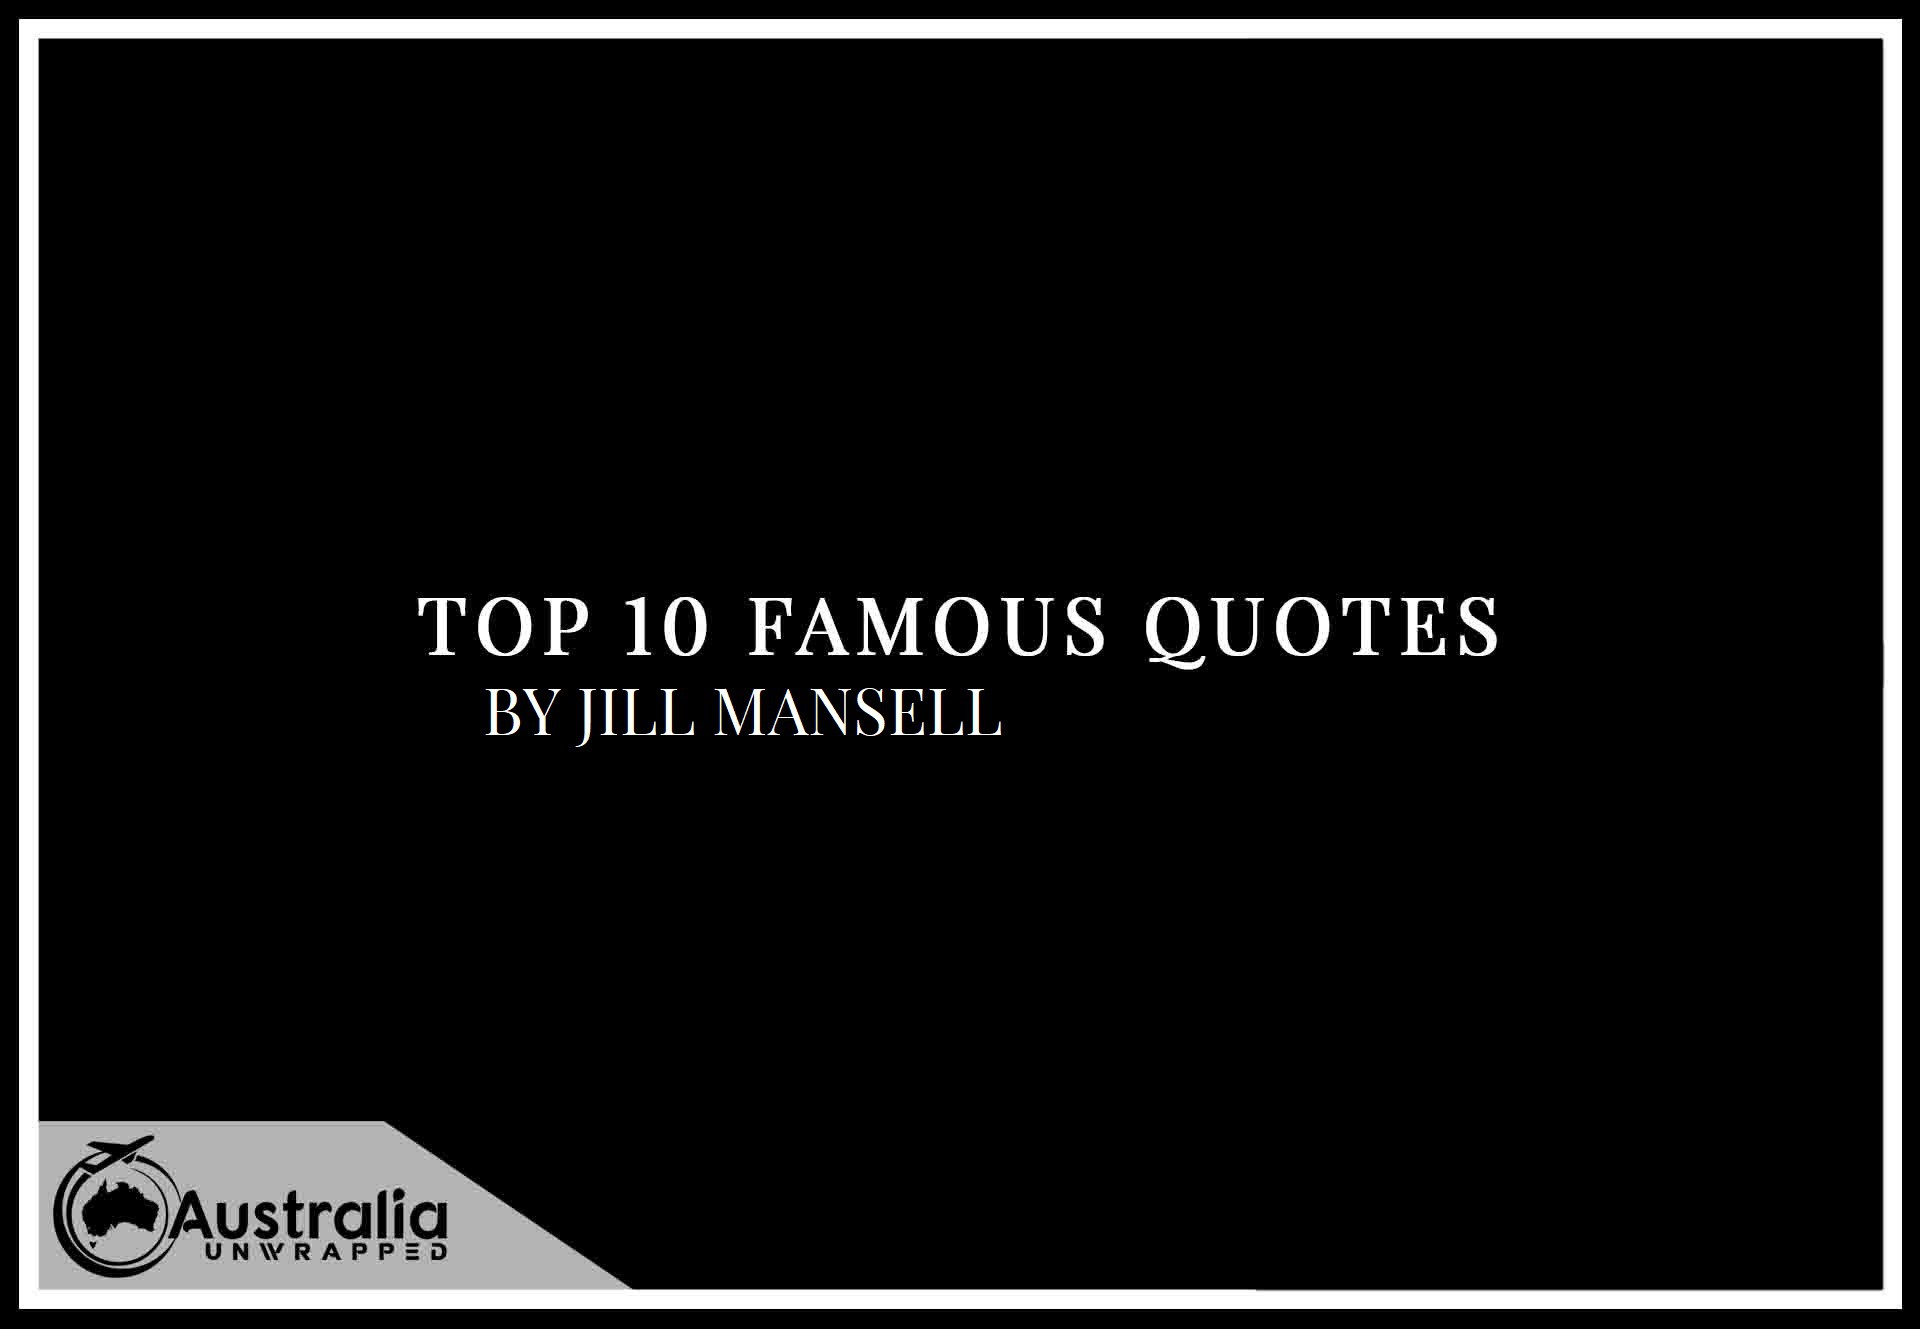 Top 10 Famous Quotes by Author Jill Mansell